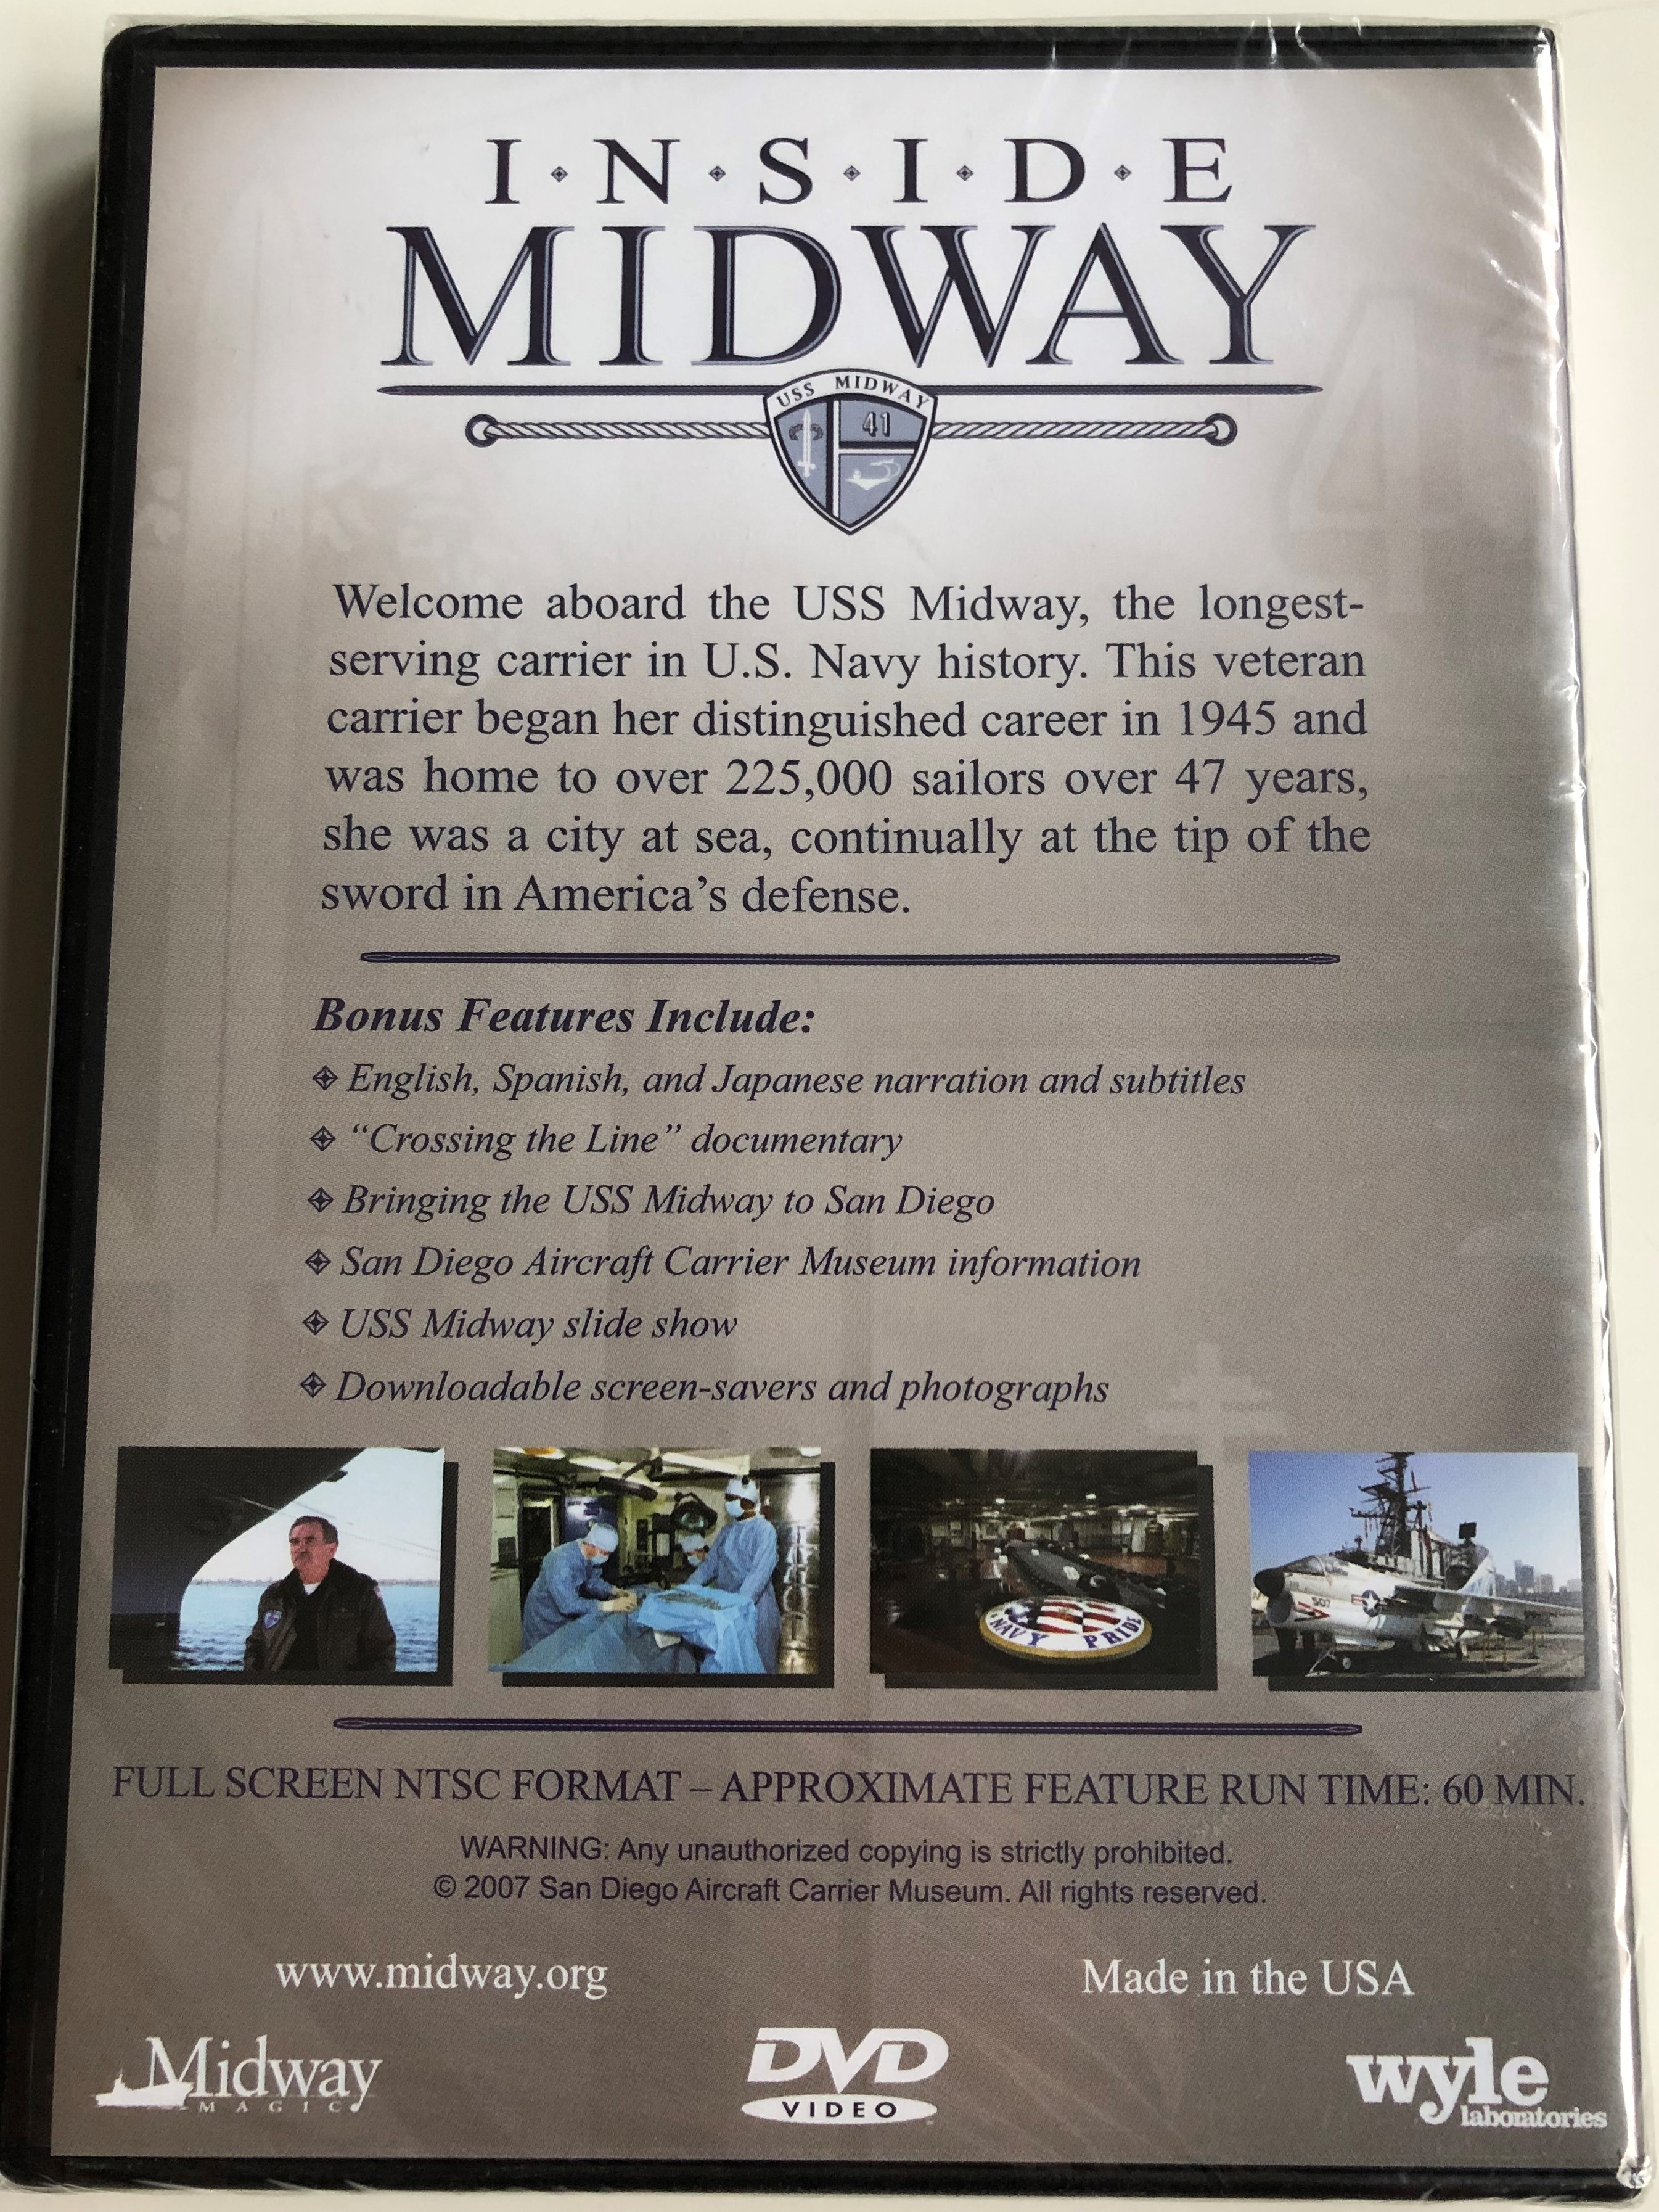 inside-uss-midway-dvd-2007-explore-the-longest-serving-aircraf-carrier-in-u.s-navy-history-2.jpg